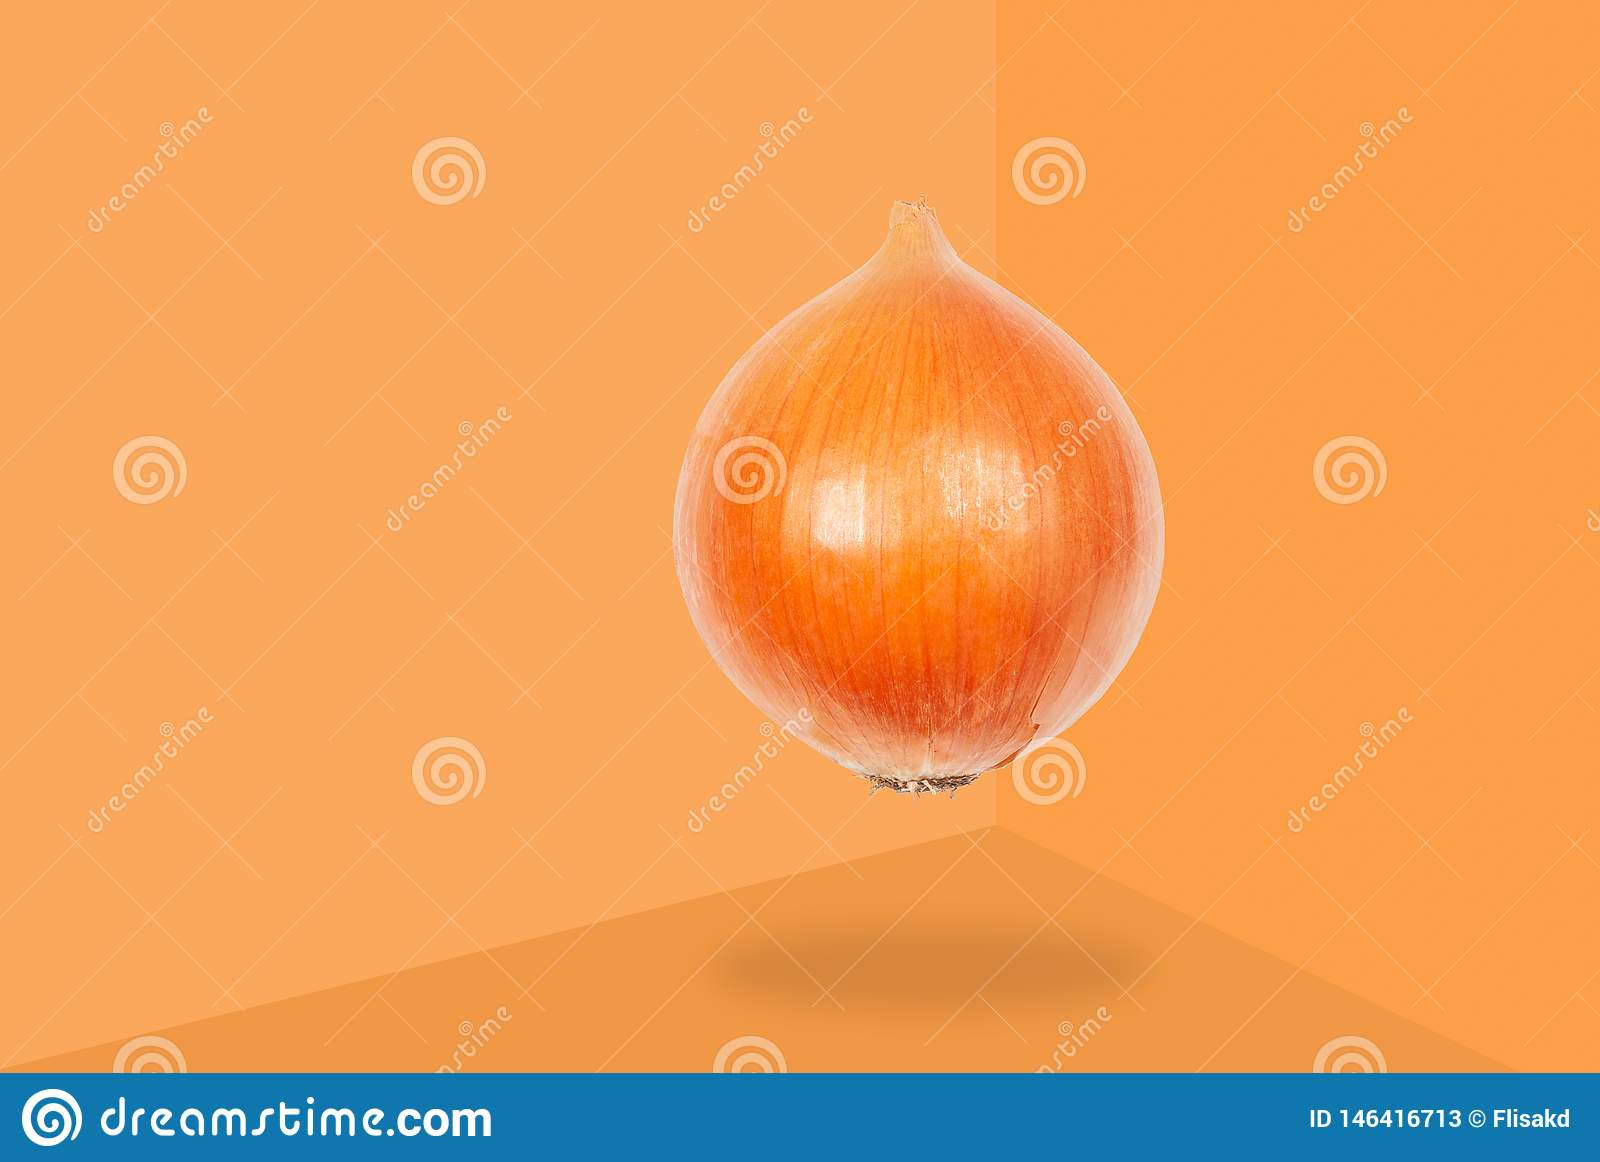 Onion levitate in air on orange background. Concept of vegetable levitation